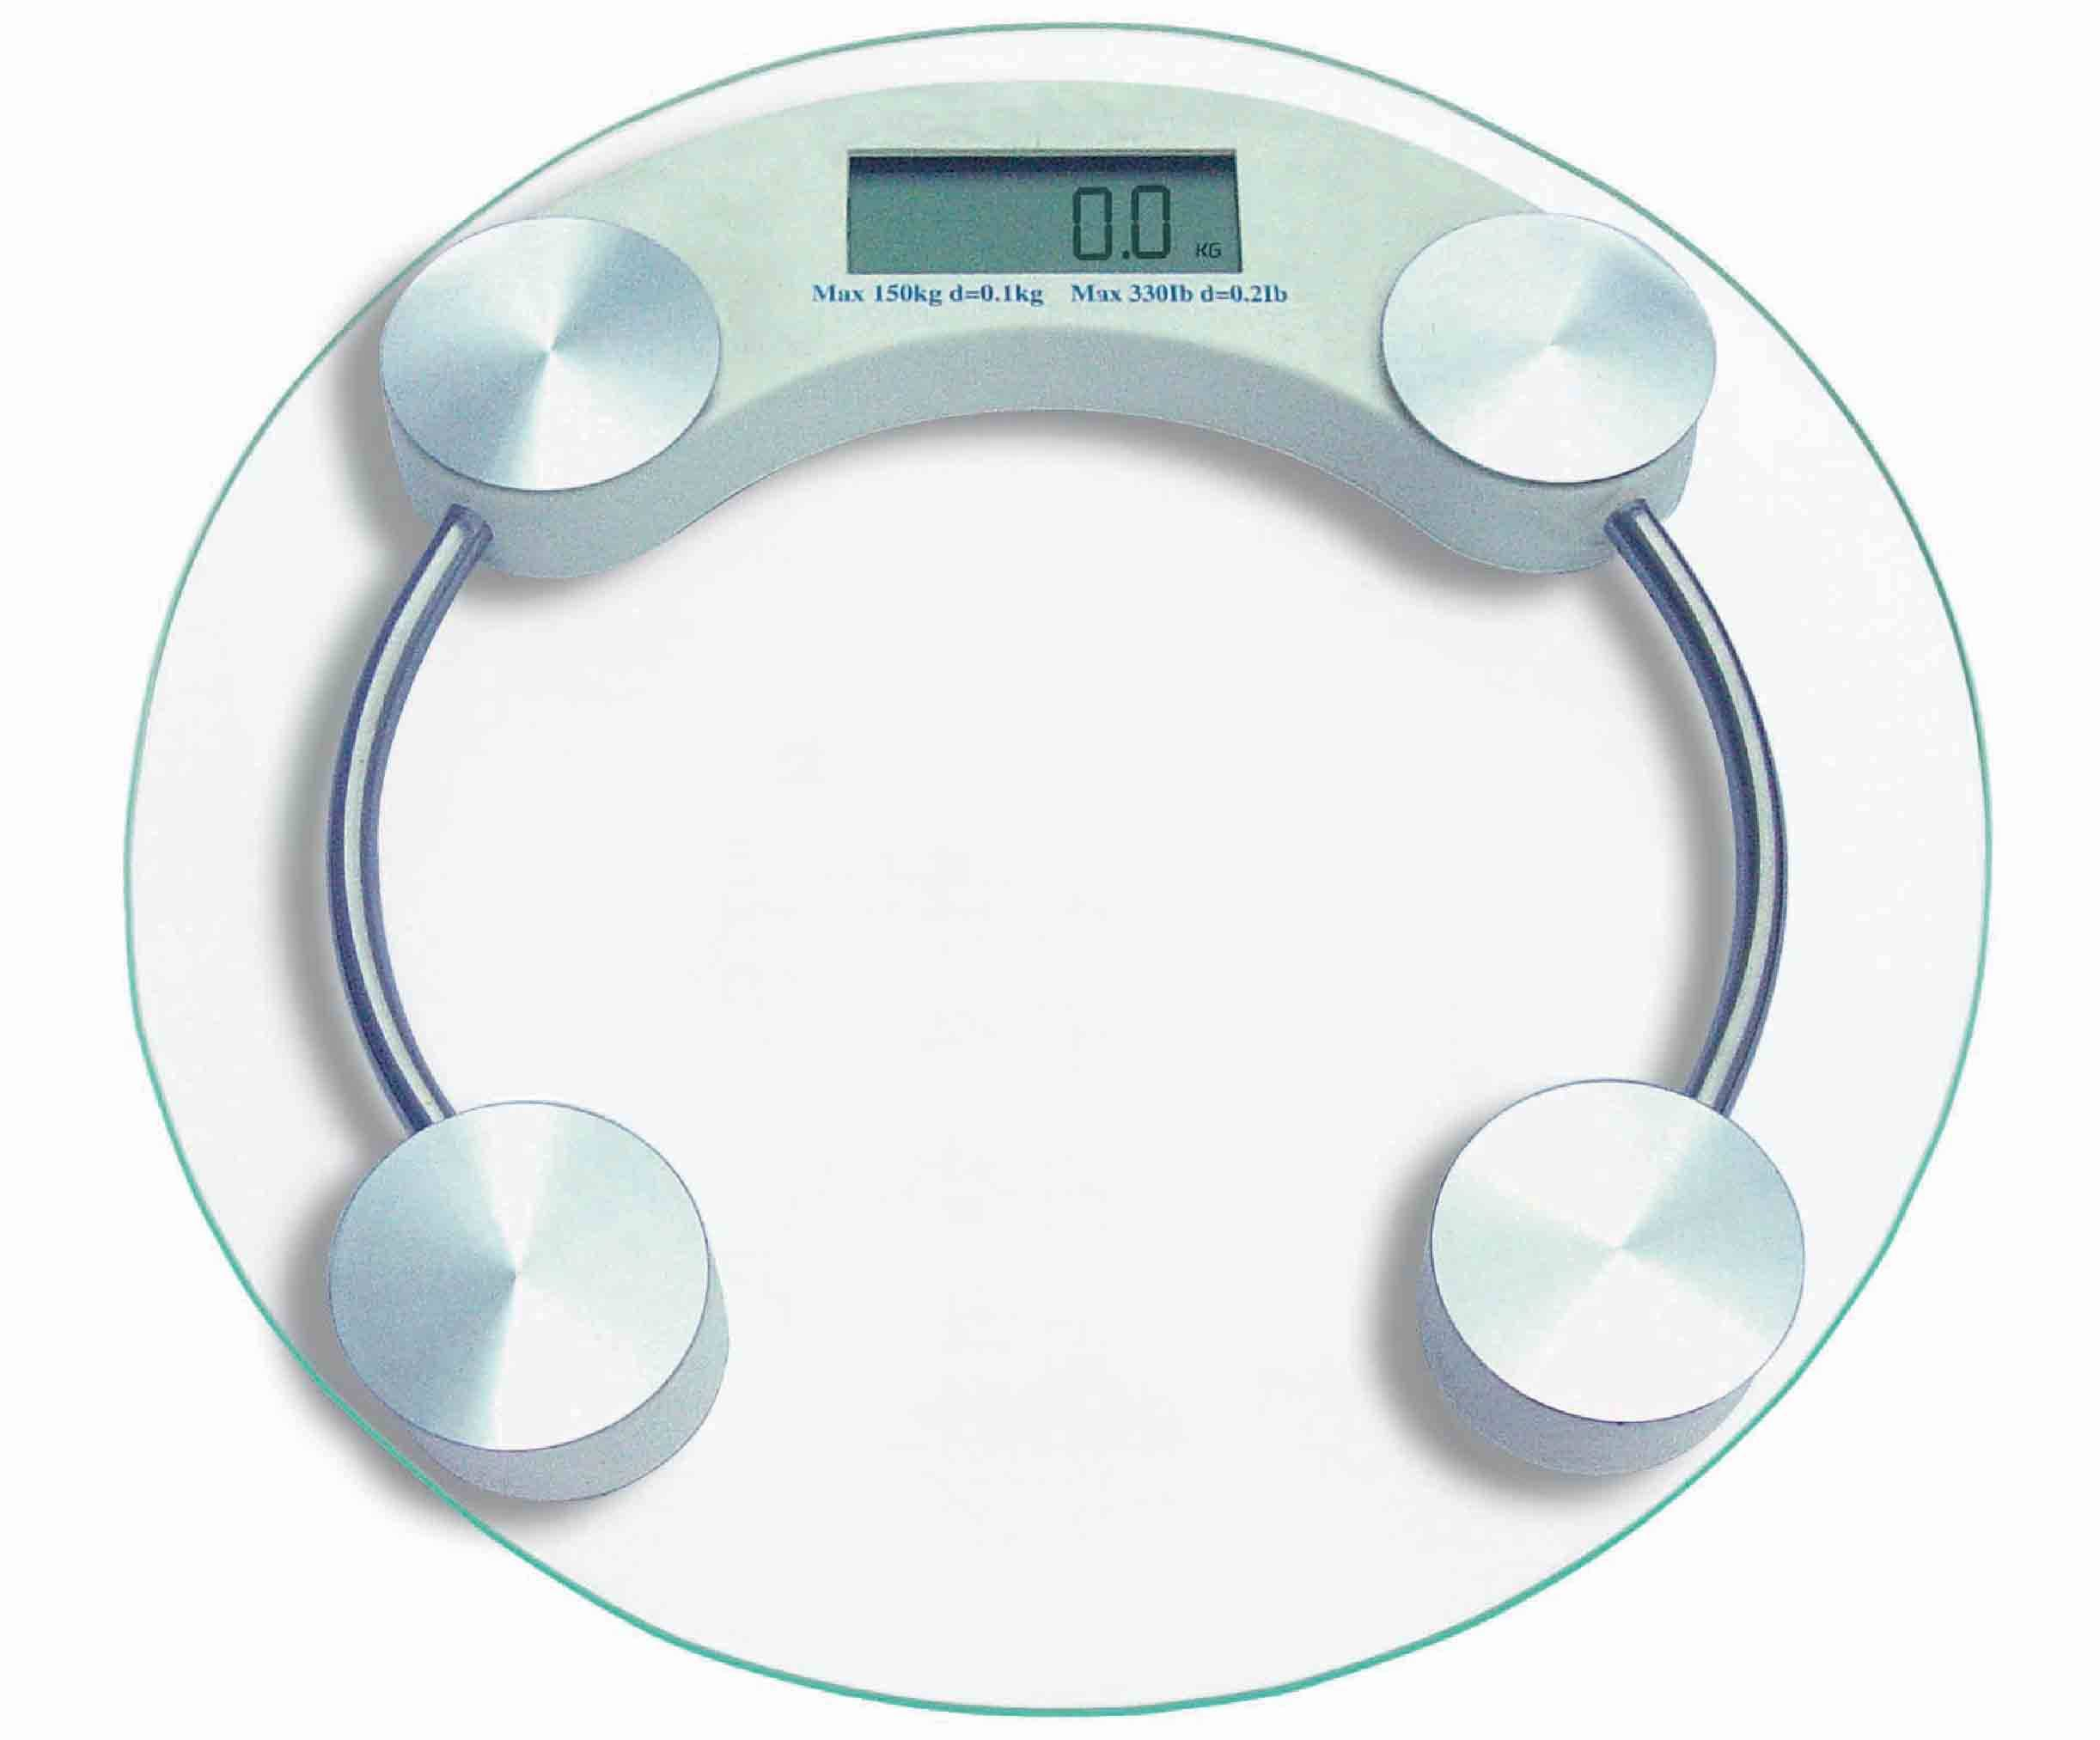 scale glass taylor with save scales lcd backlit display bathroom product digital